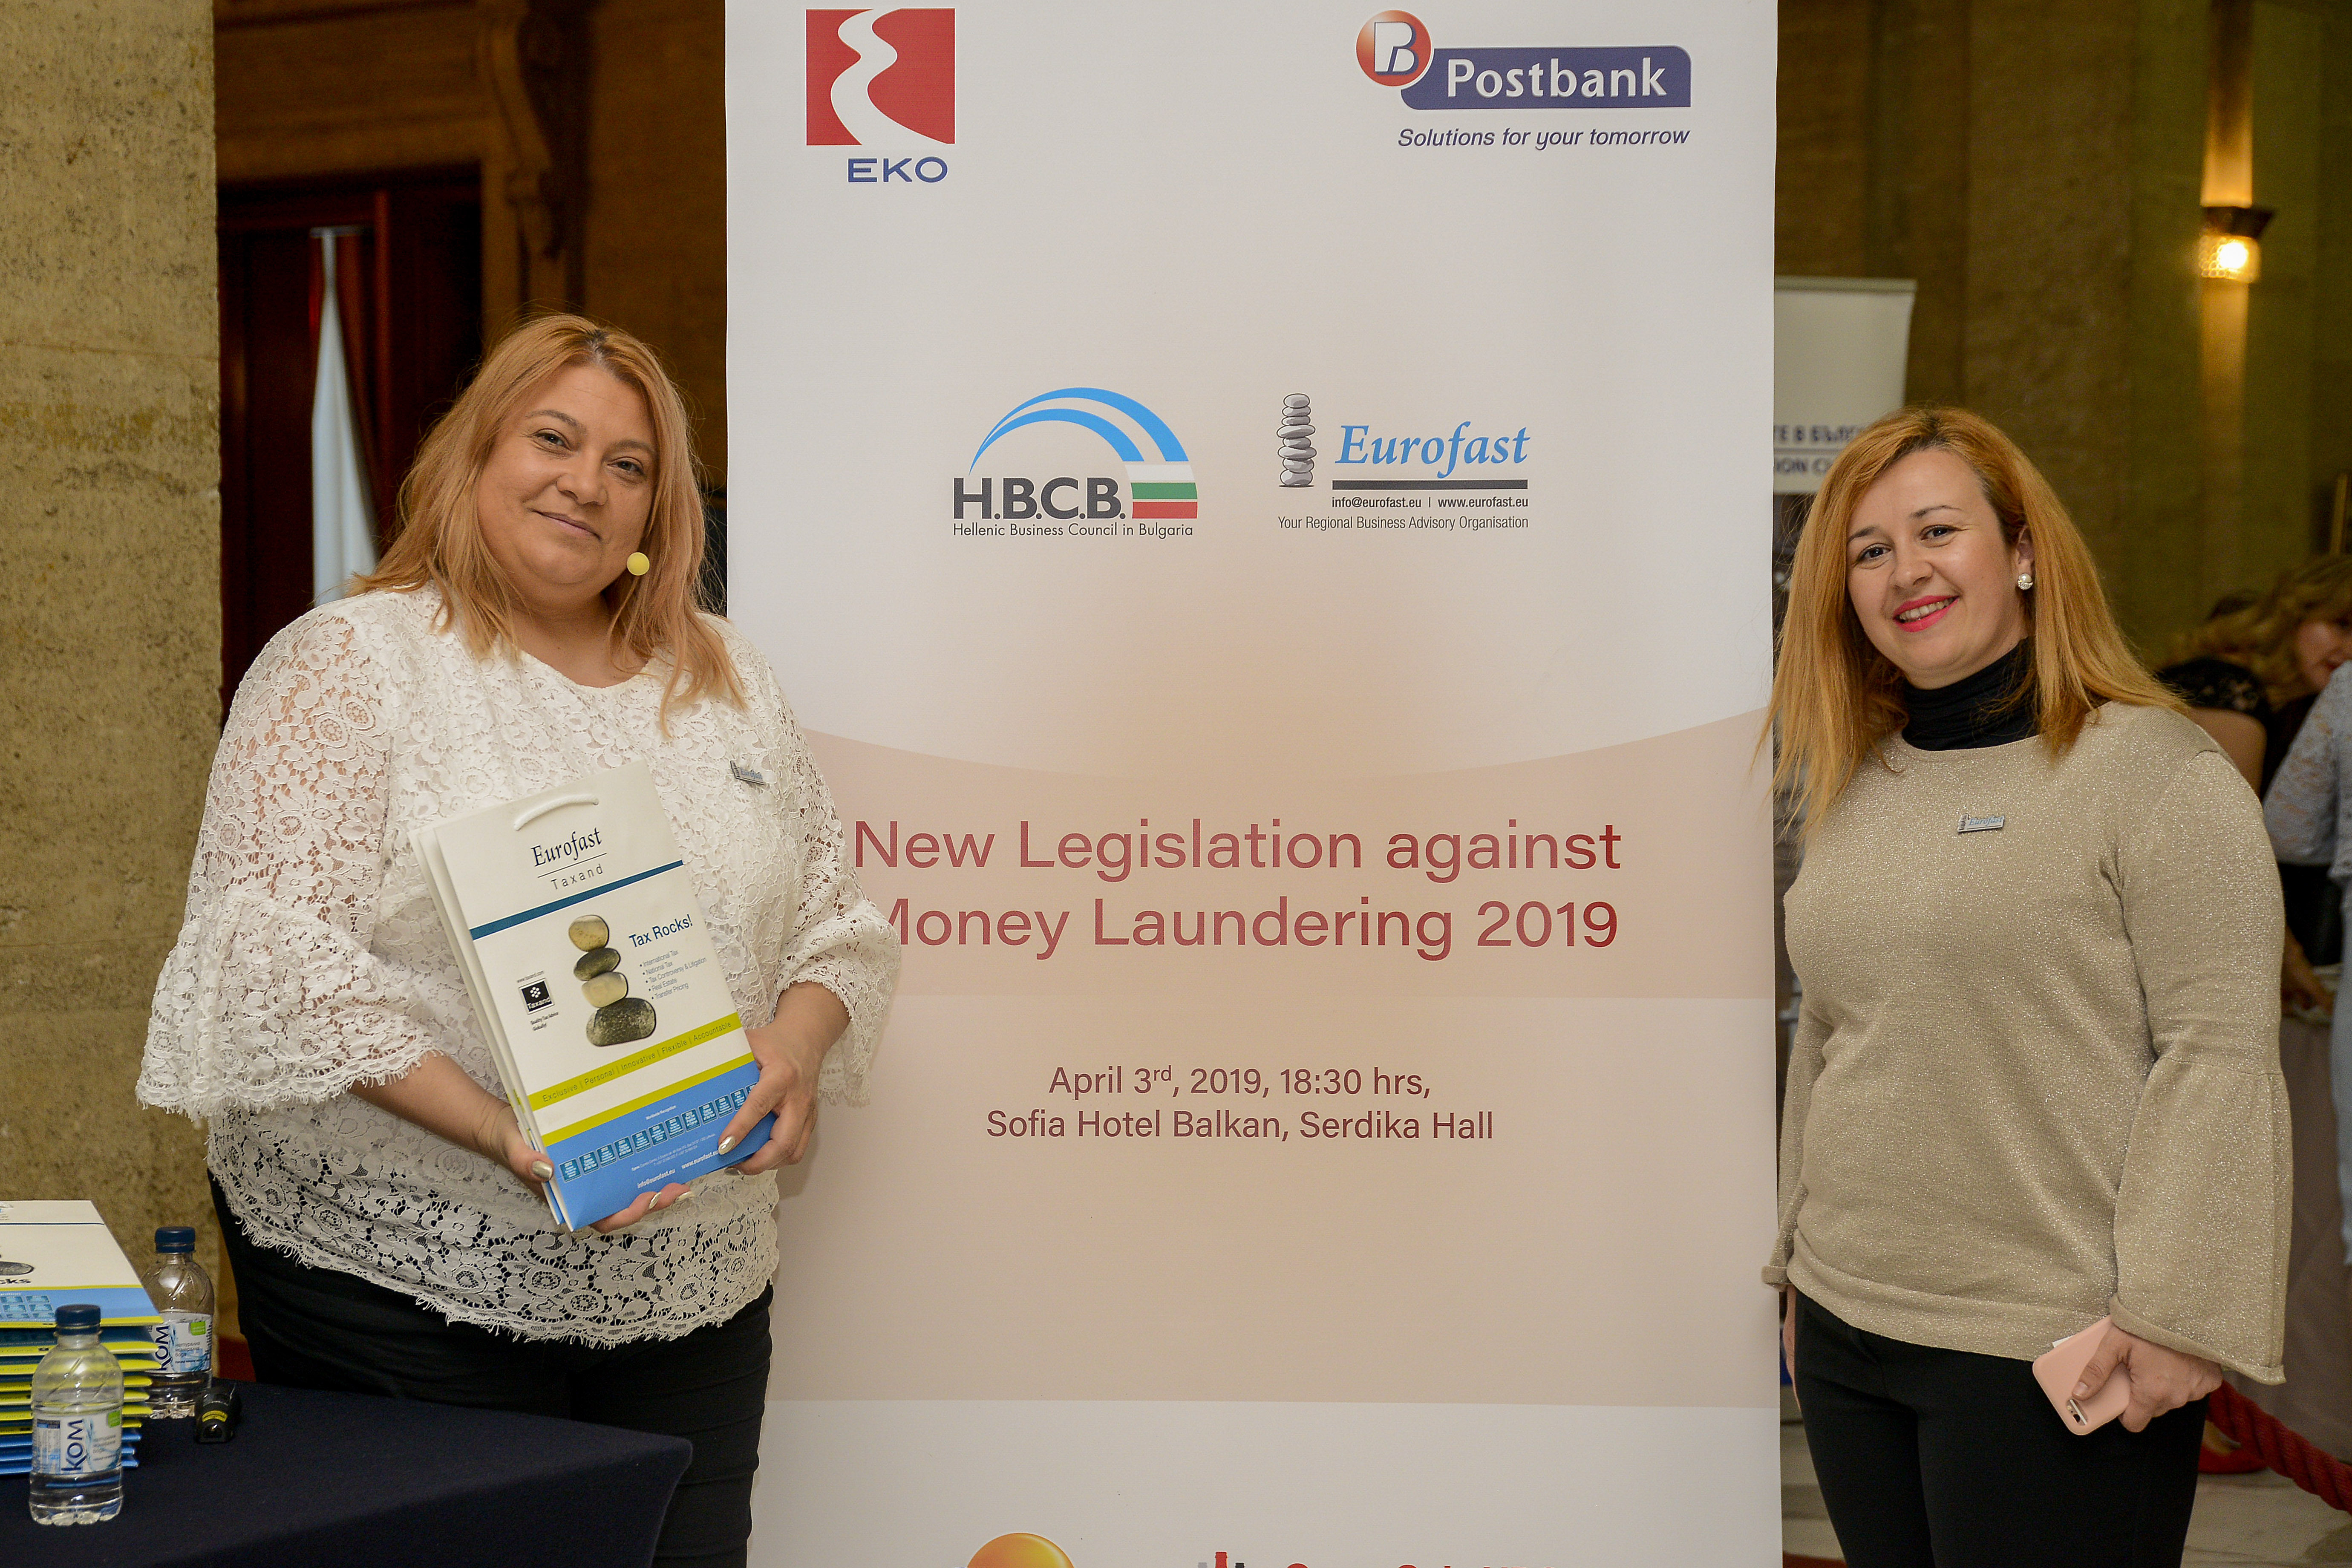 New Requirements against Money Laundering 2019